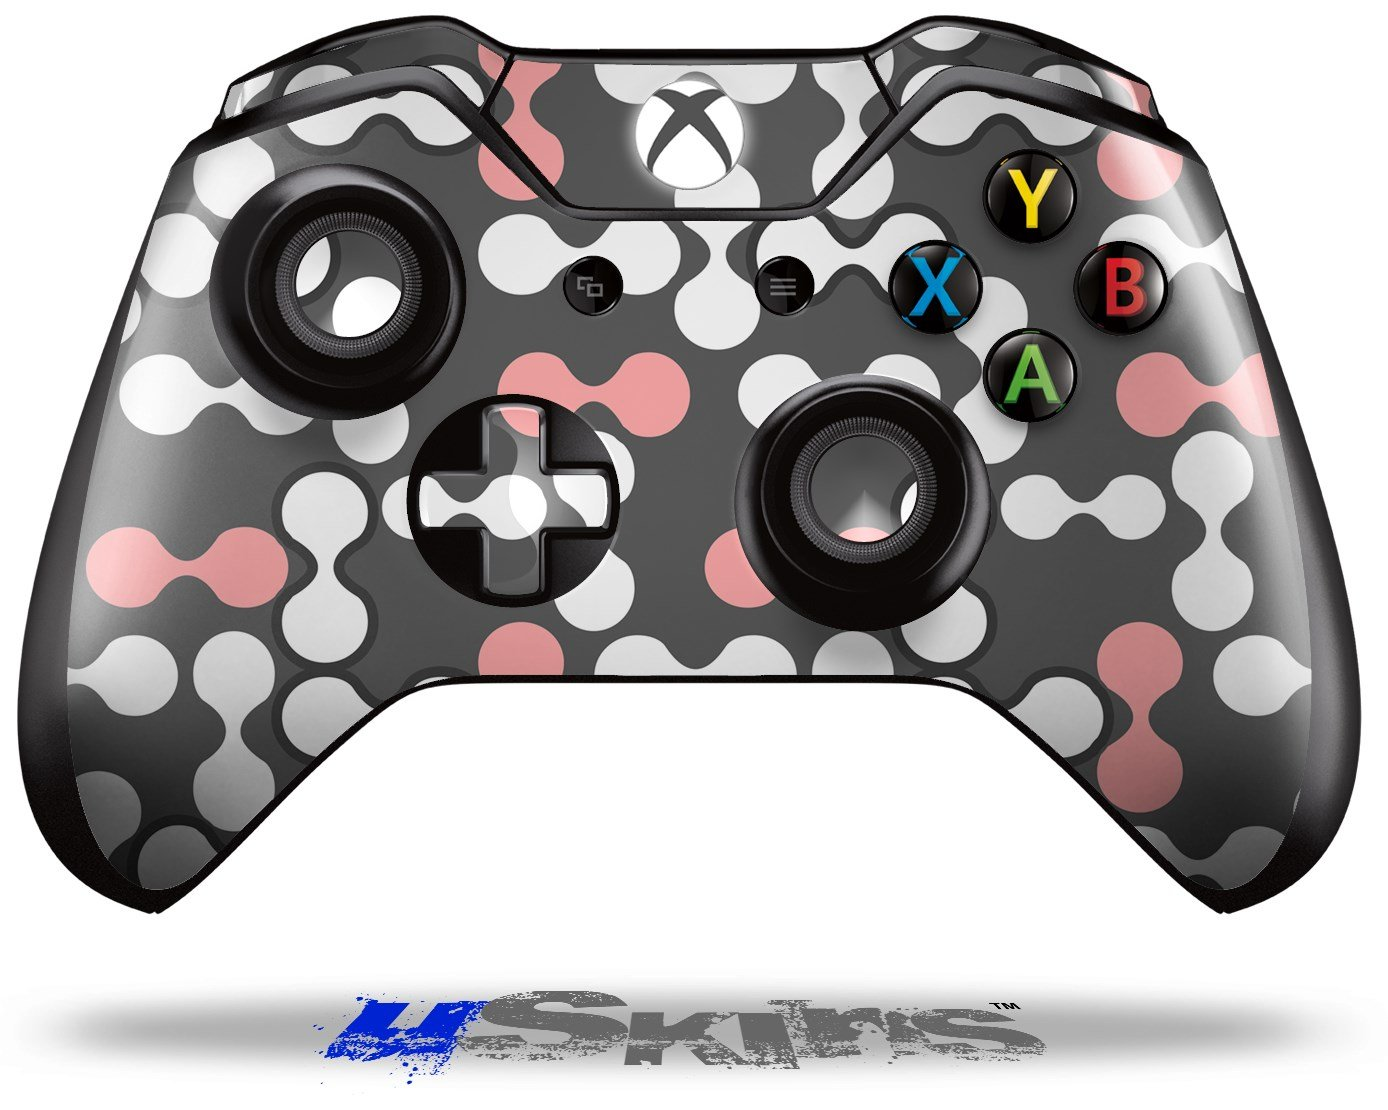 Locknodes 04 Pink - Decal Style Skin fits Microsoft XBOX One Wireless Controller wood grain oak 01 holiday bundle decal style skin set fits xbox one console kinect and 2 controllers xbox system sold separately